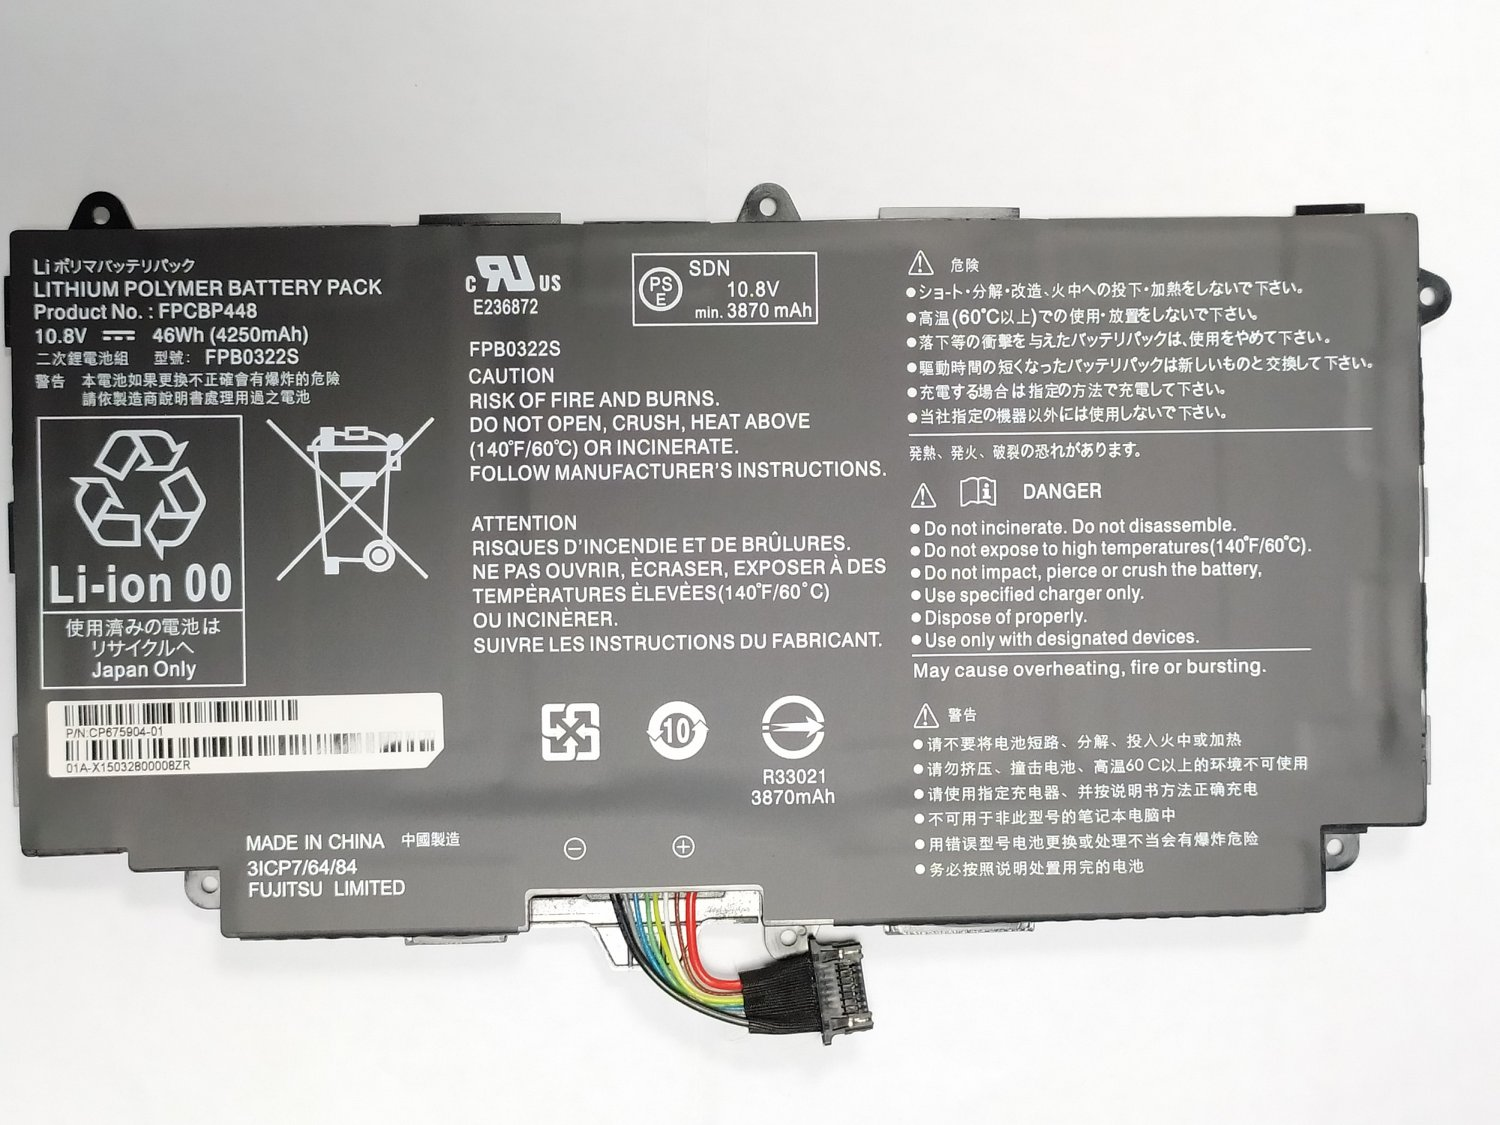 46Wh NEW FPCBP448 FPB0322S Battery For Fujitsu Stylistic Q775 Q775-01 Tablet PC